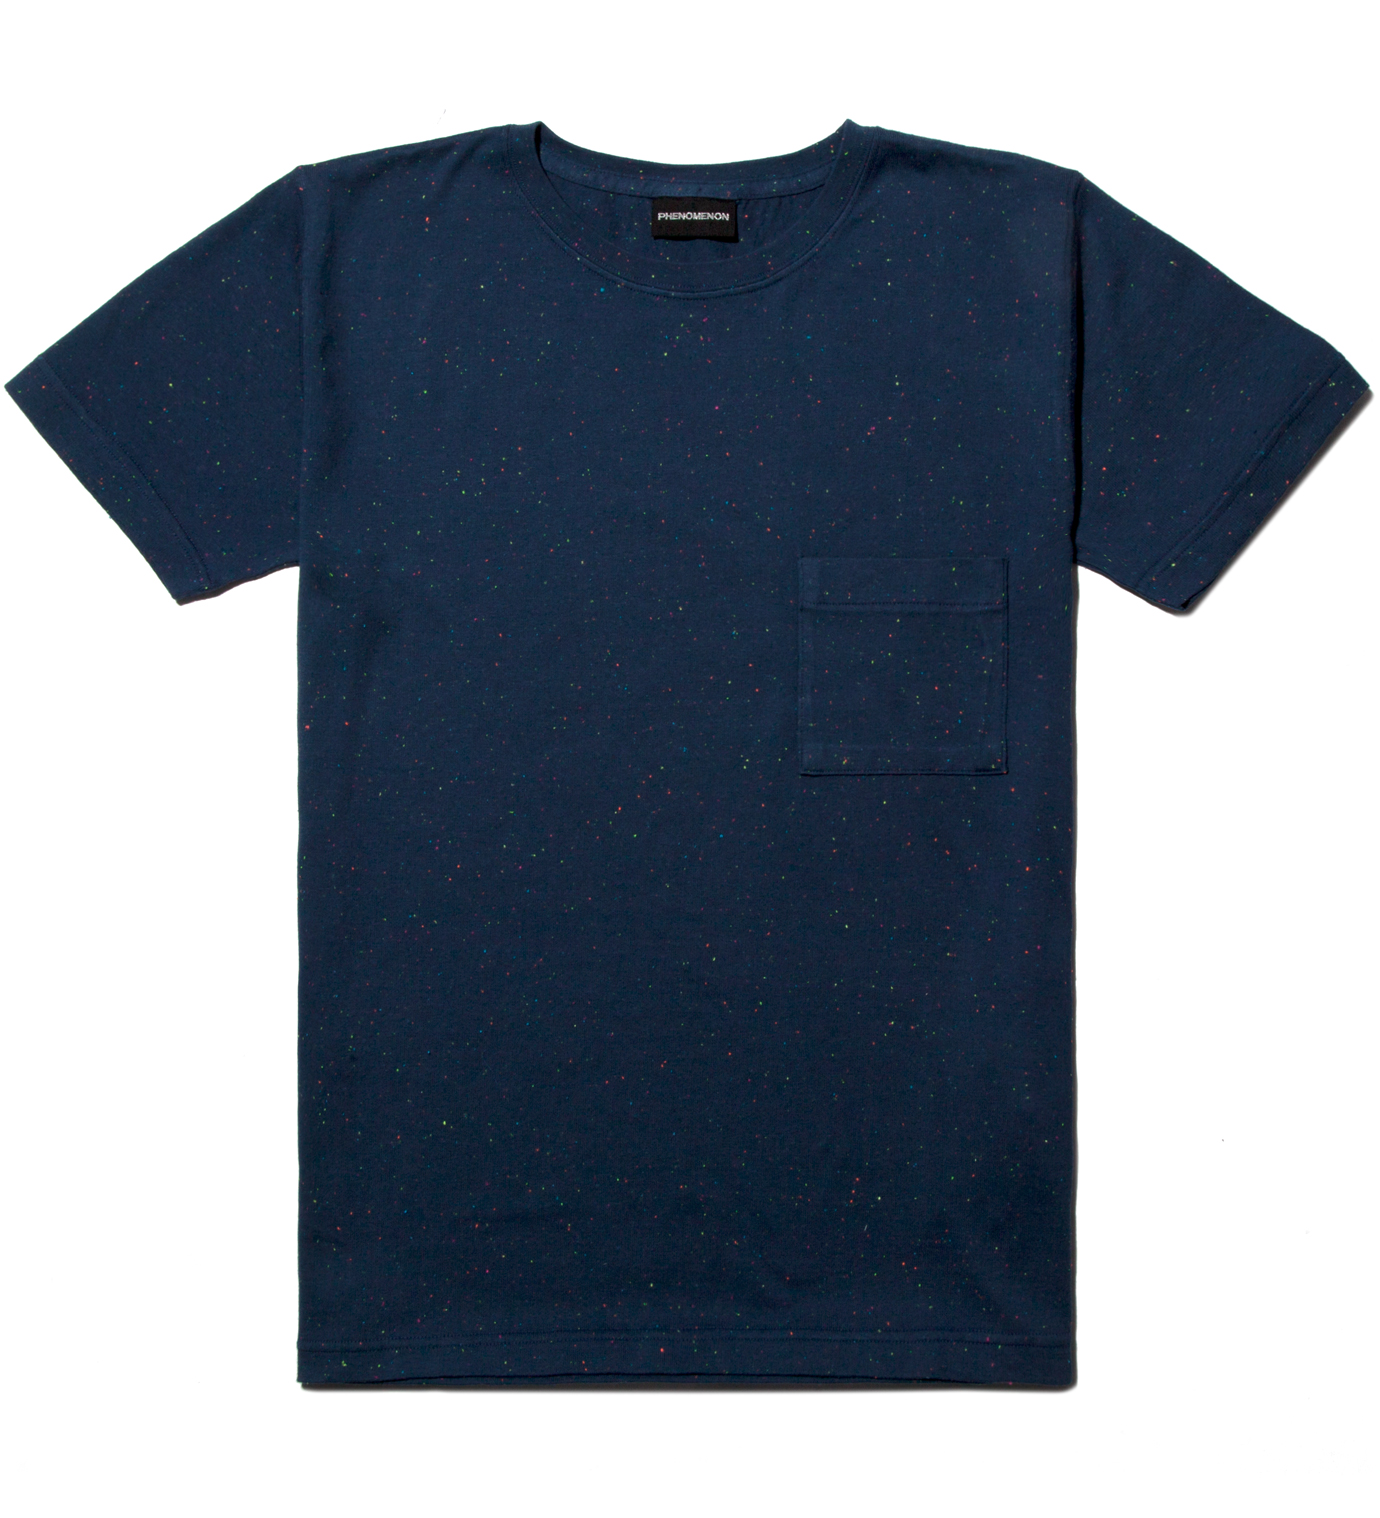 PHENOMENON Navy Mix Cotton Pocket T-Shirt